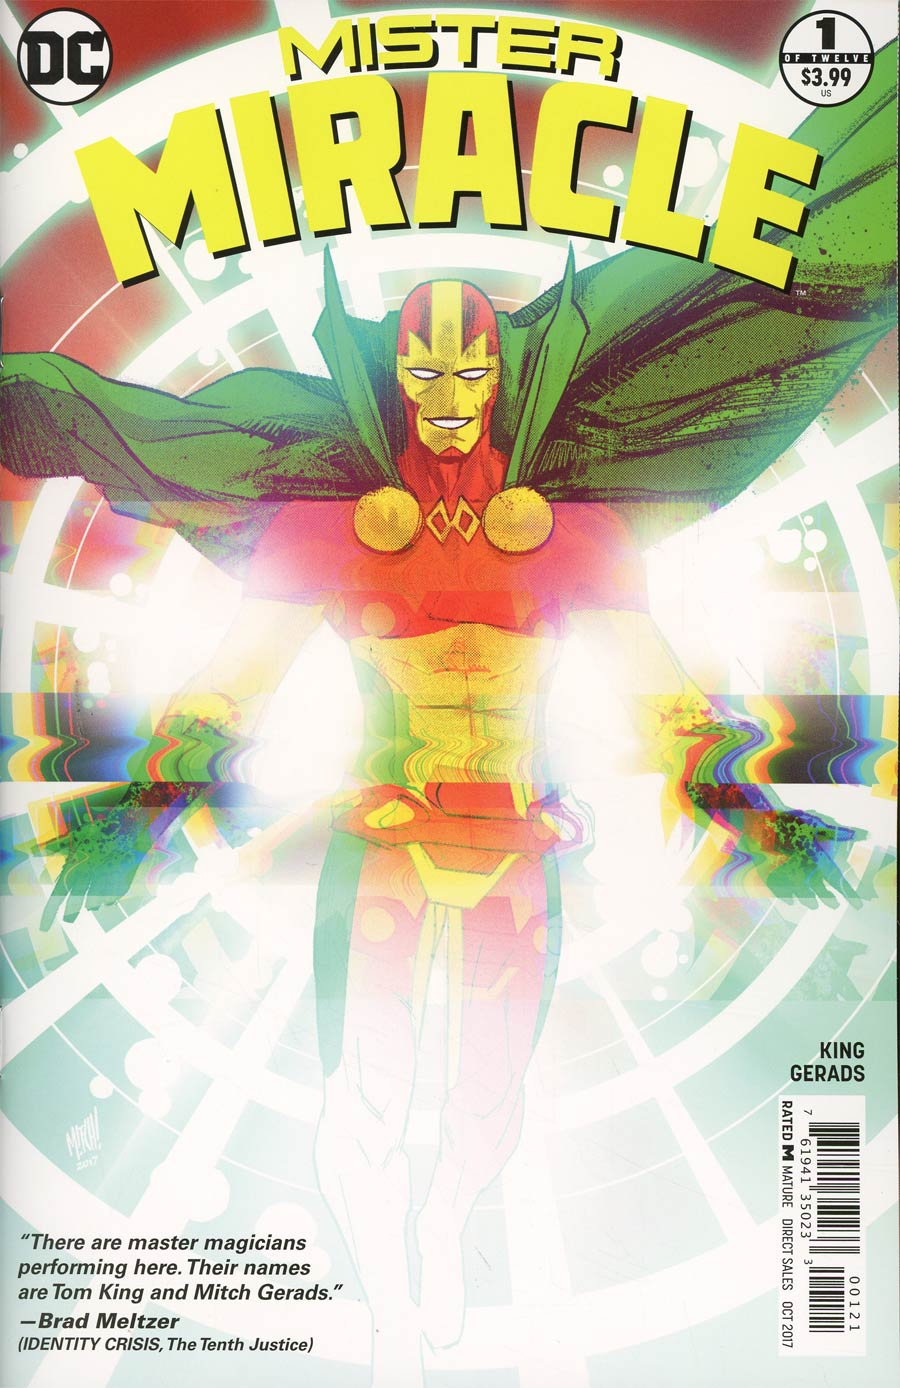 Mister Miracle Vol 4 #1 Cover B Variant Mitch Gerads Cover